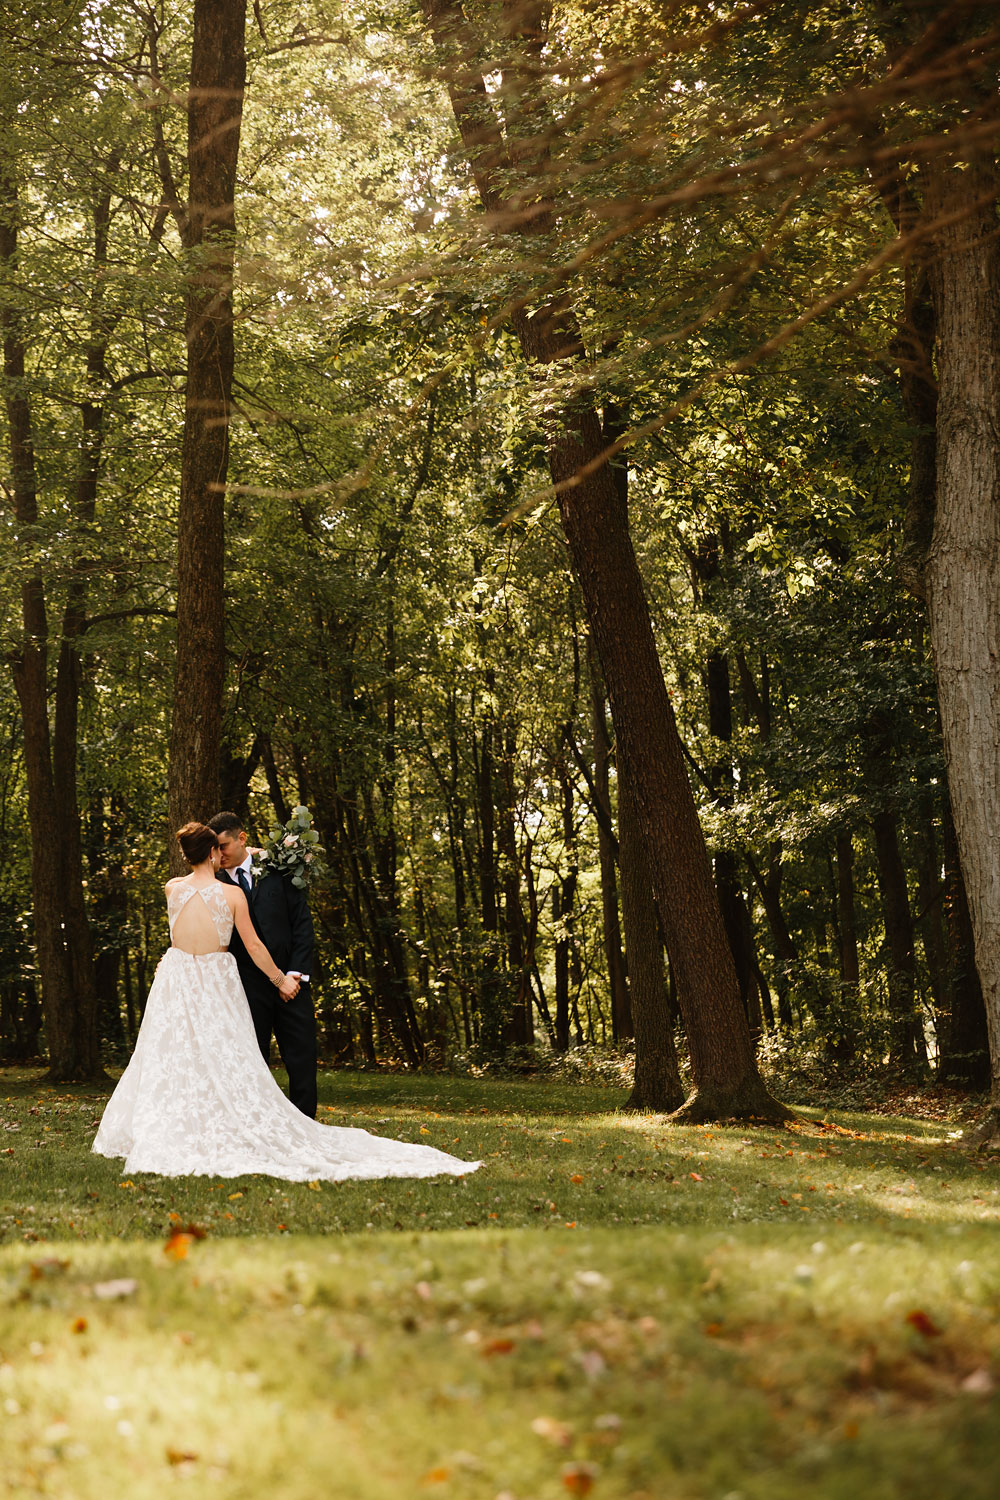 cleveland-wedding-photographers-at-landolls-mohican-castle-central-ohio-romantic-wedding-photography-86.jpg